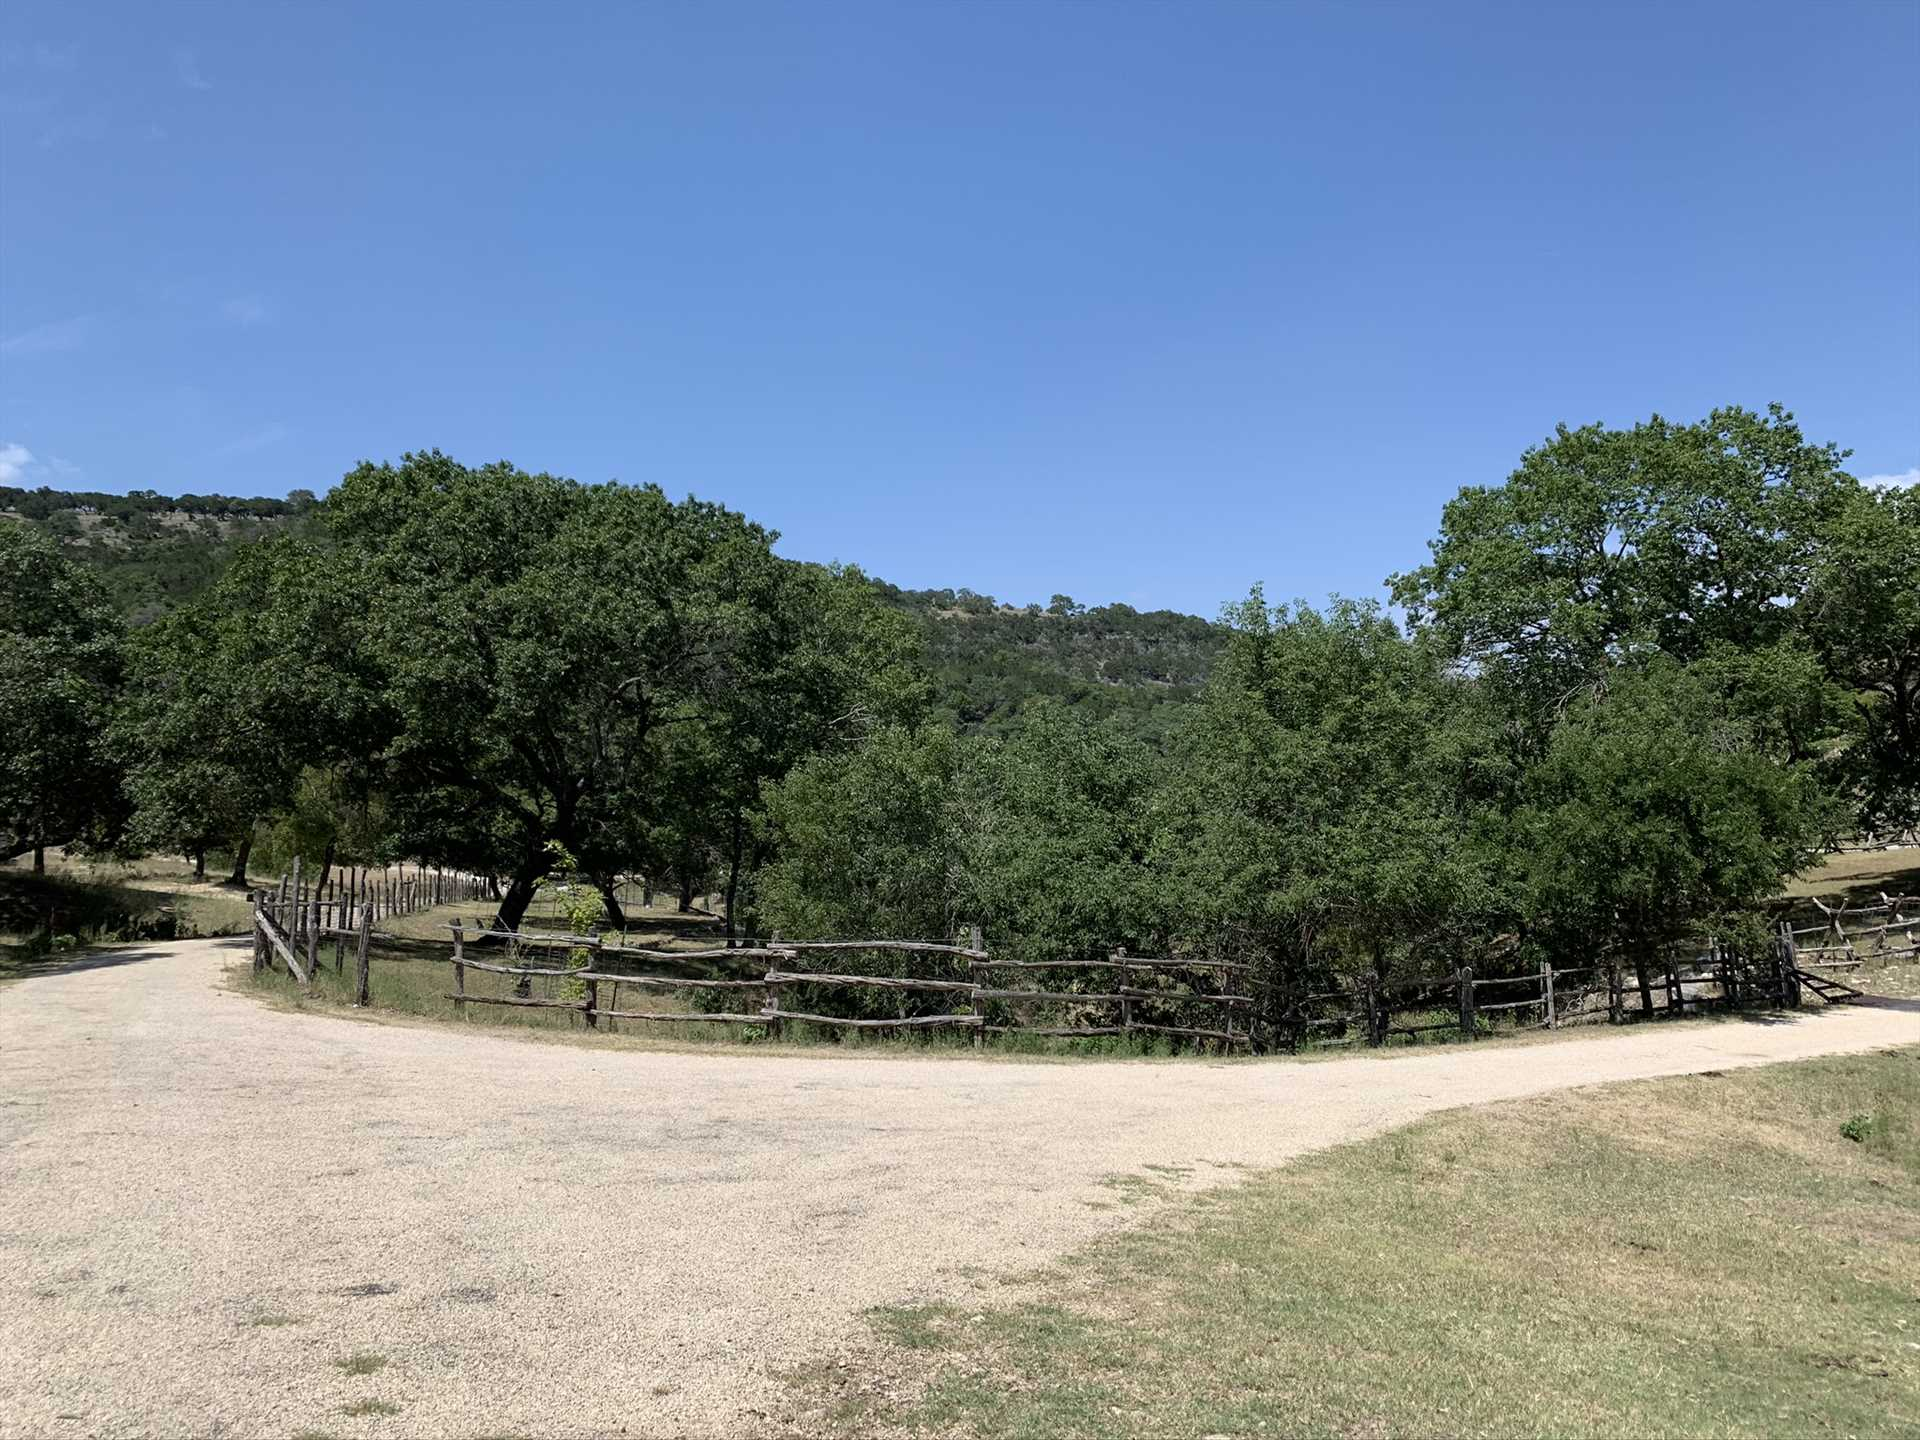 The 500-acre 7 Canyons Ranch includes over ten miles of hiking trails for guests to explore.